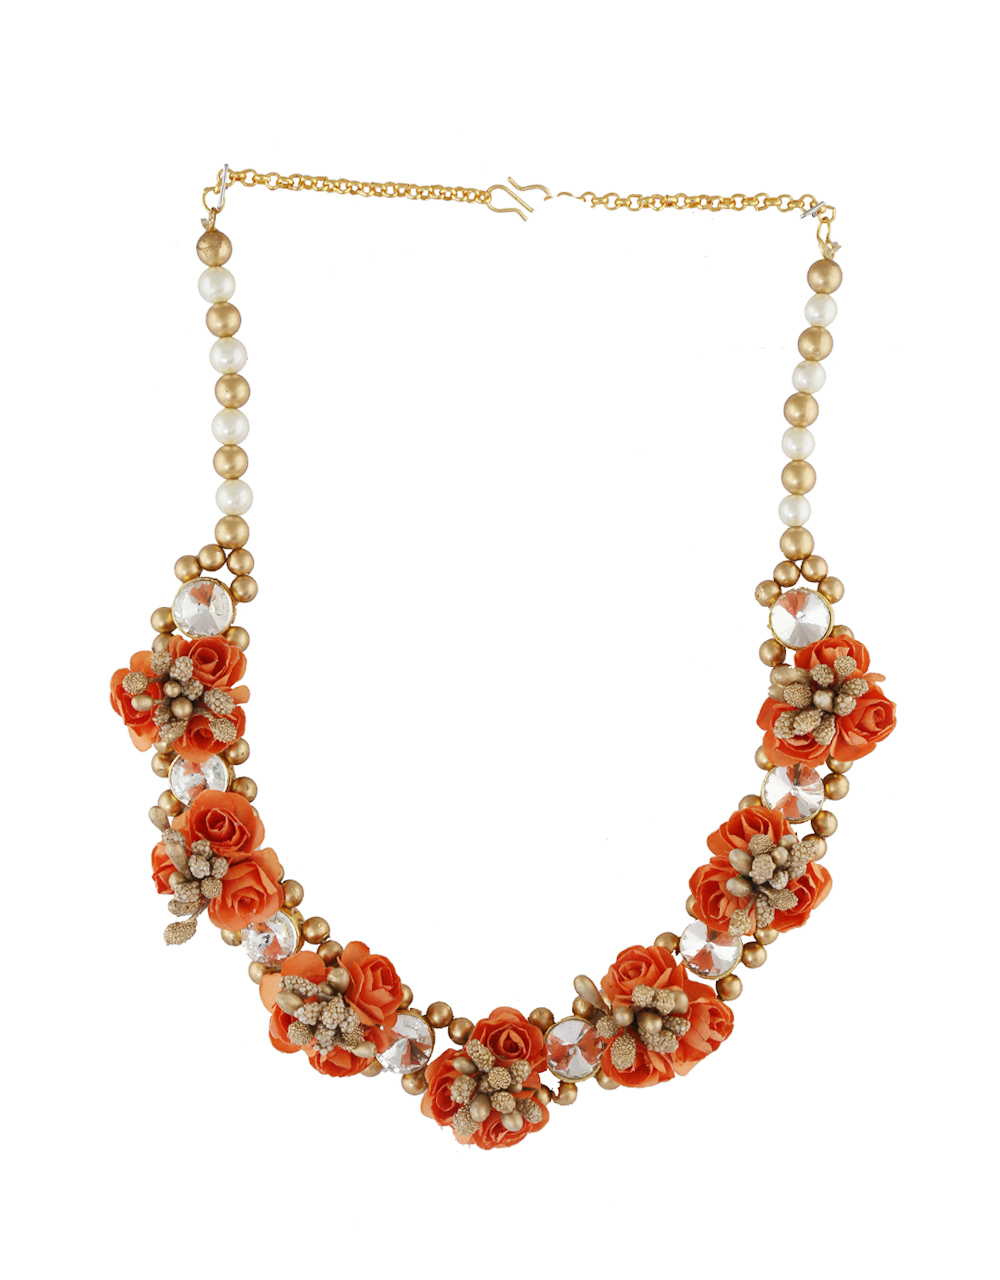 Orange Colour Gold Finish Moti Styled Floral Jewellery For Bride